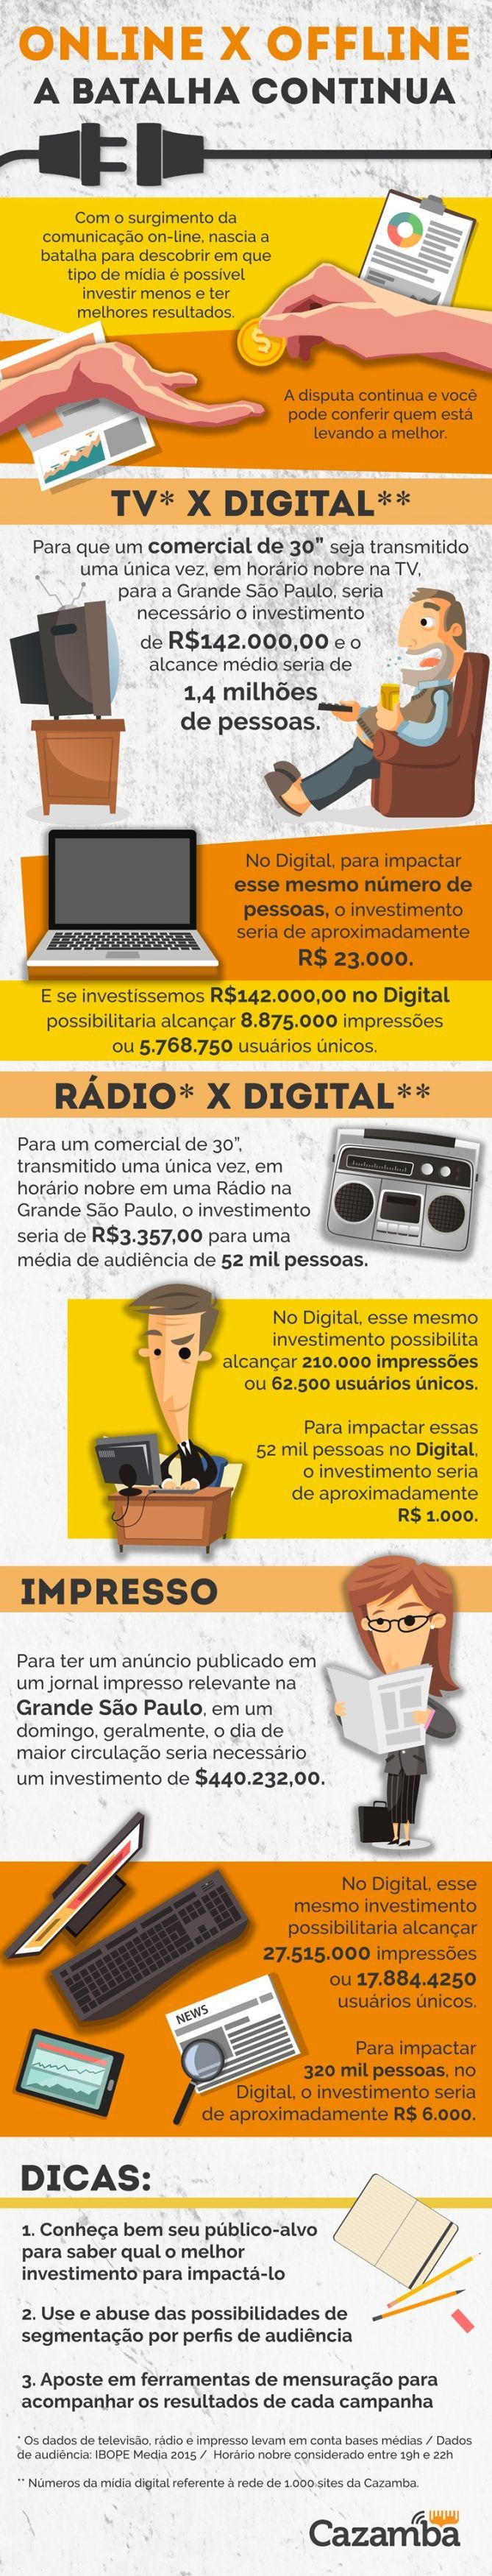 Agencia de marketing digial e consultoria de Marketing Digital temos especialistas em SEO e consultor de alto nivel, somos bons em midias sociais, loja virtual, damos cursos nas empresas.